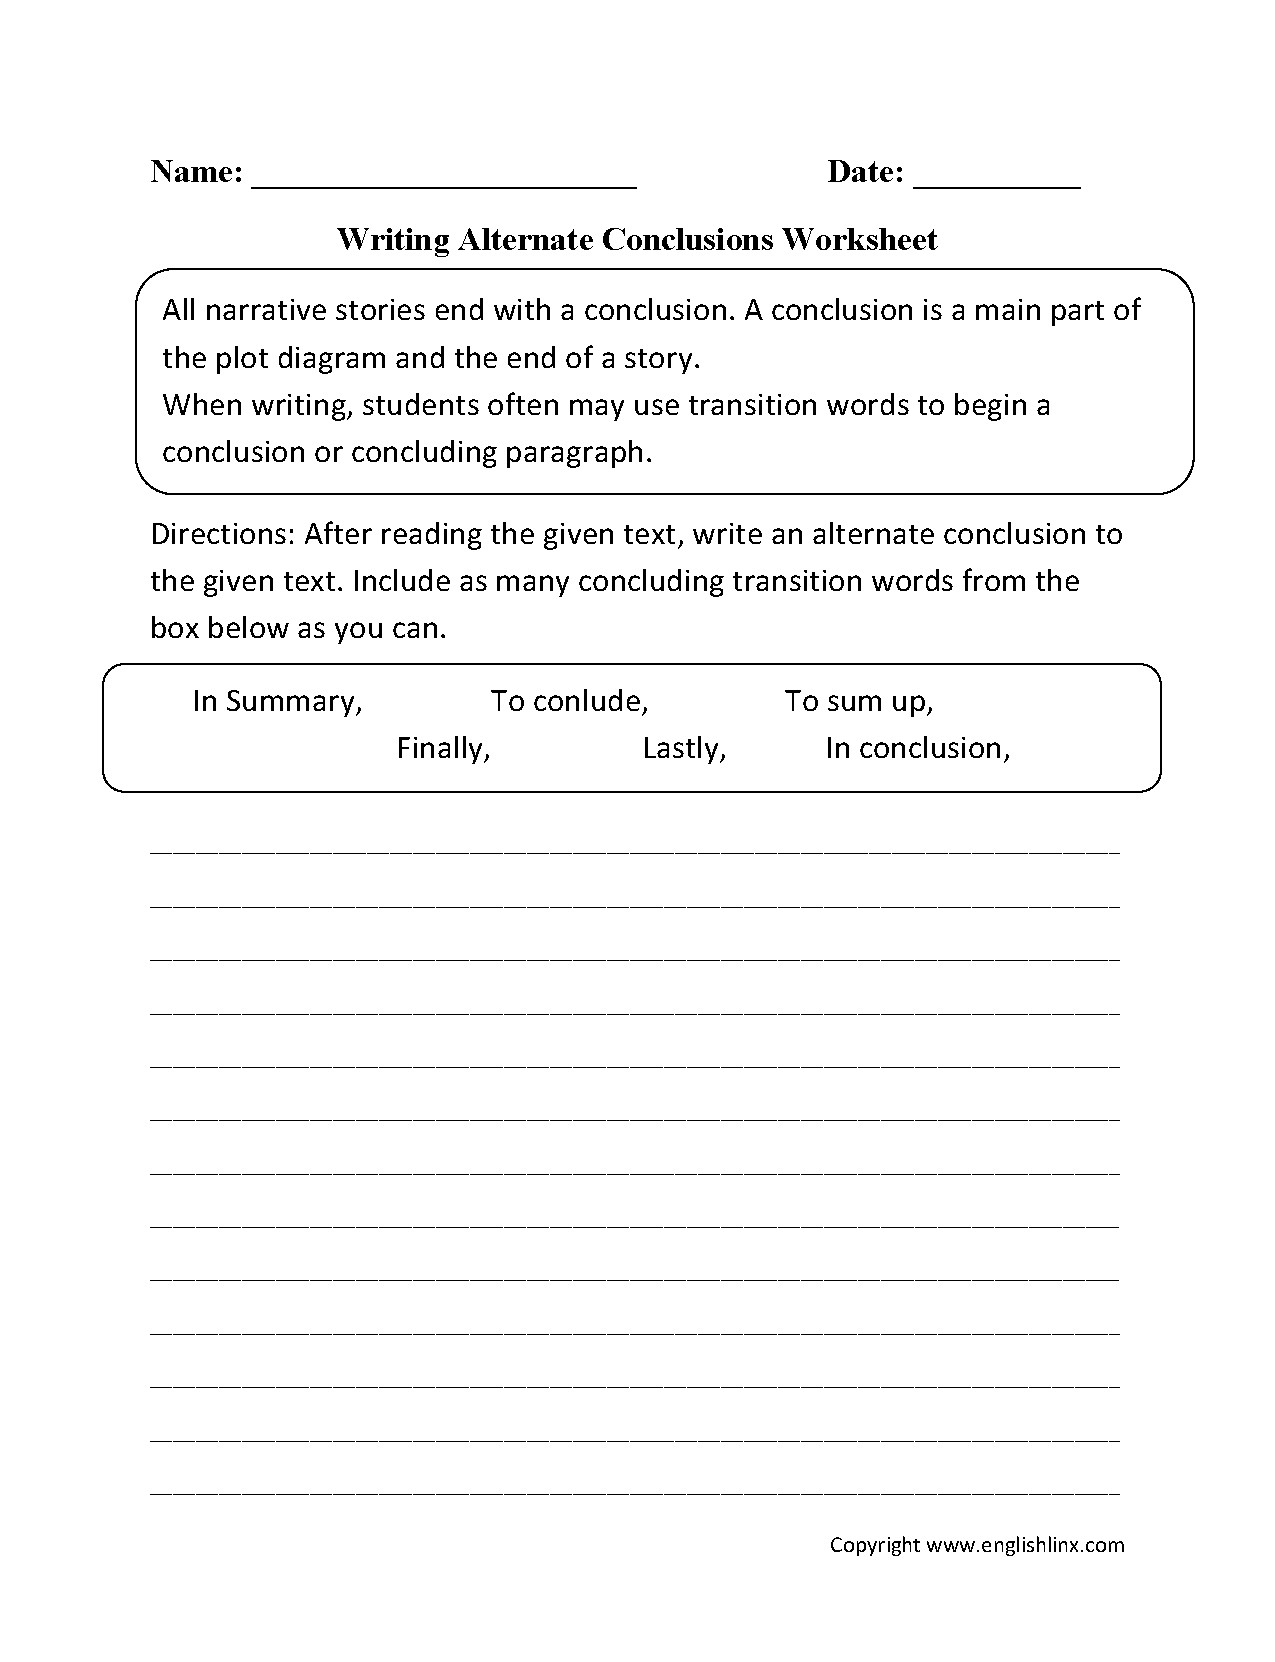 4th Grade Paragraph Writing Worksheets 027 Englishlinx Writing Conclusions Worksheets Pertaining to